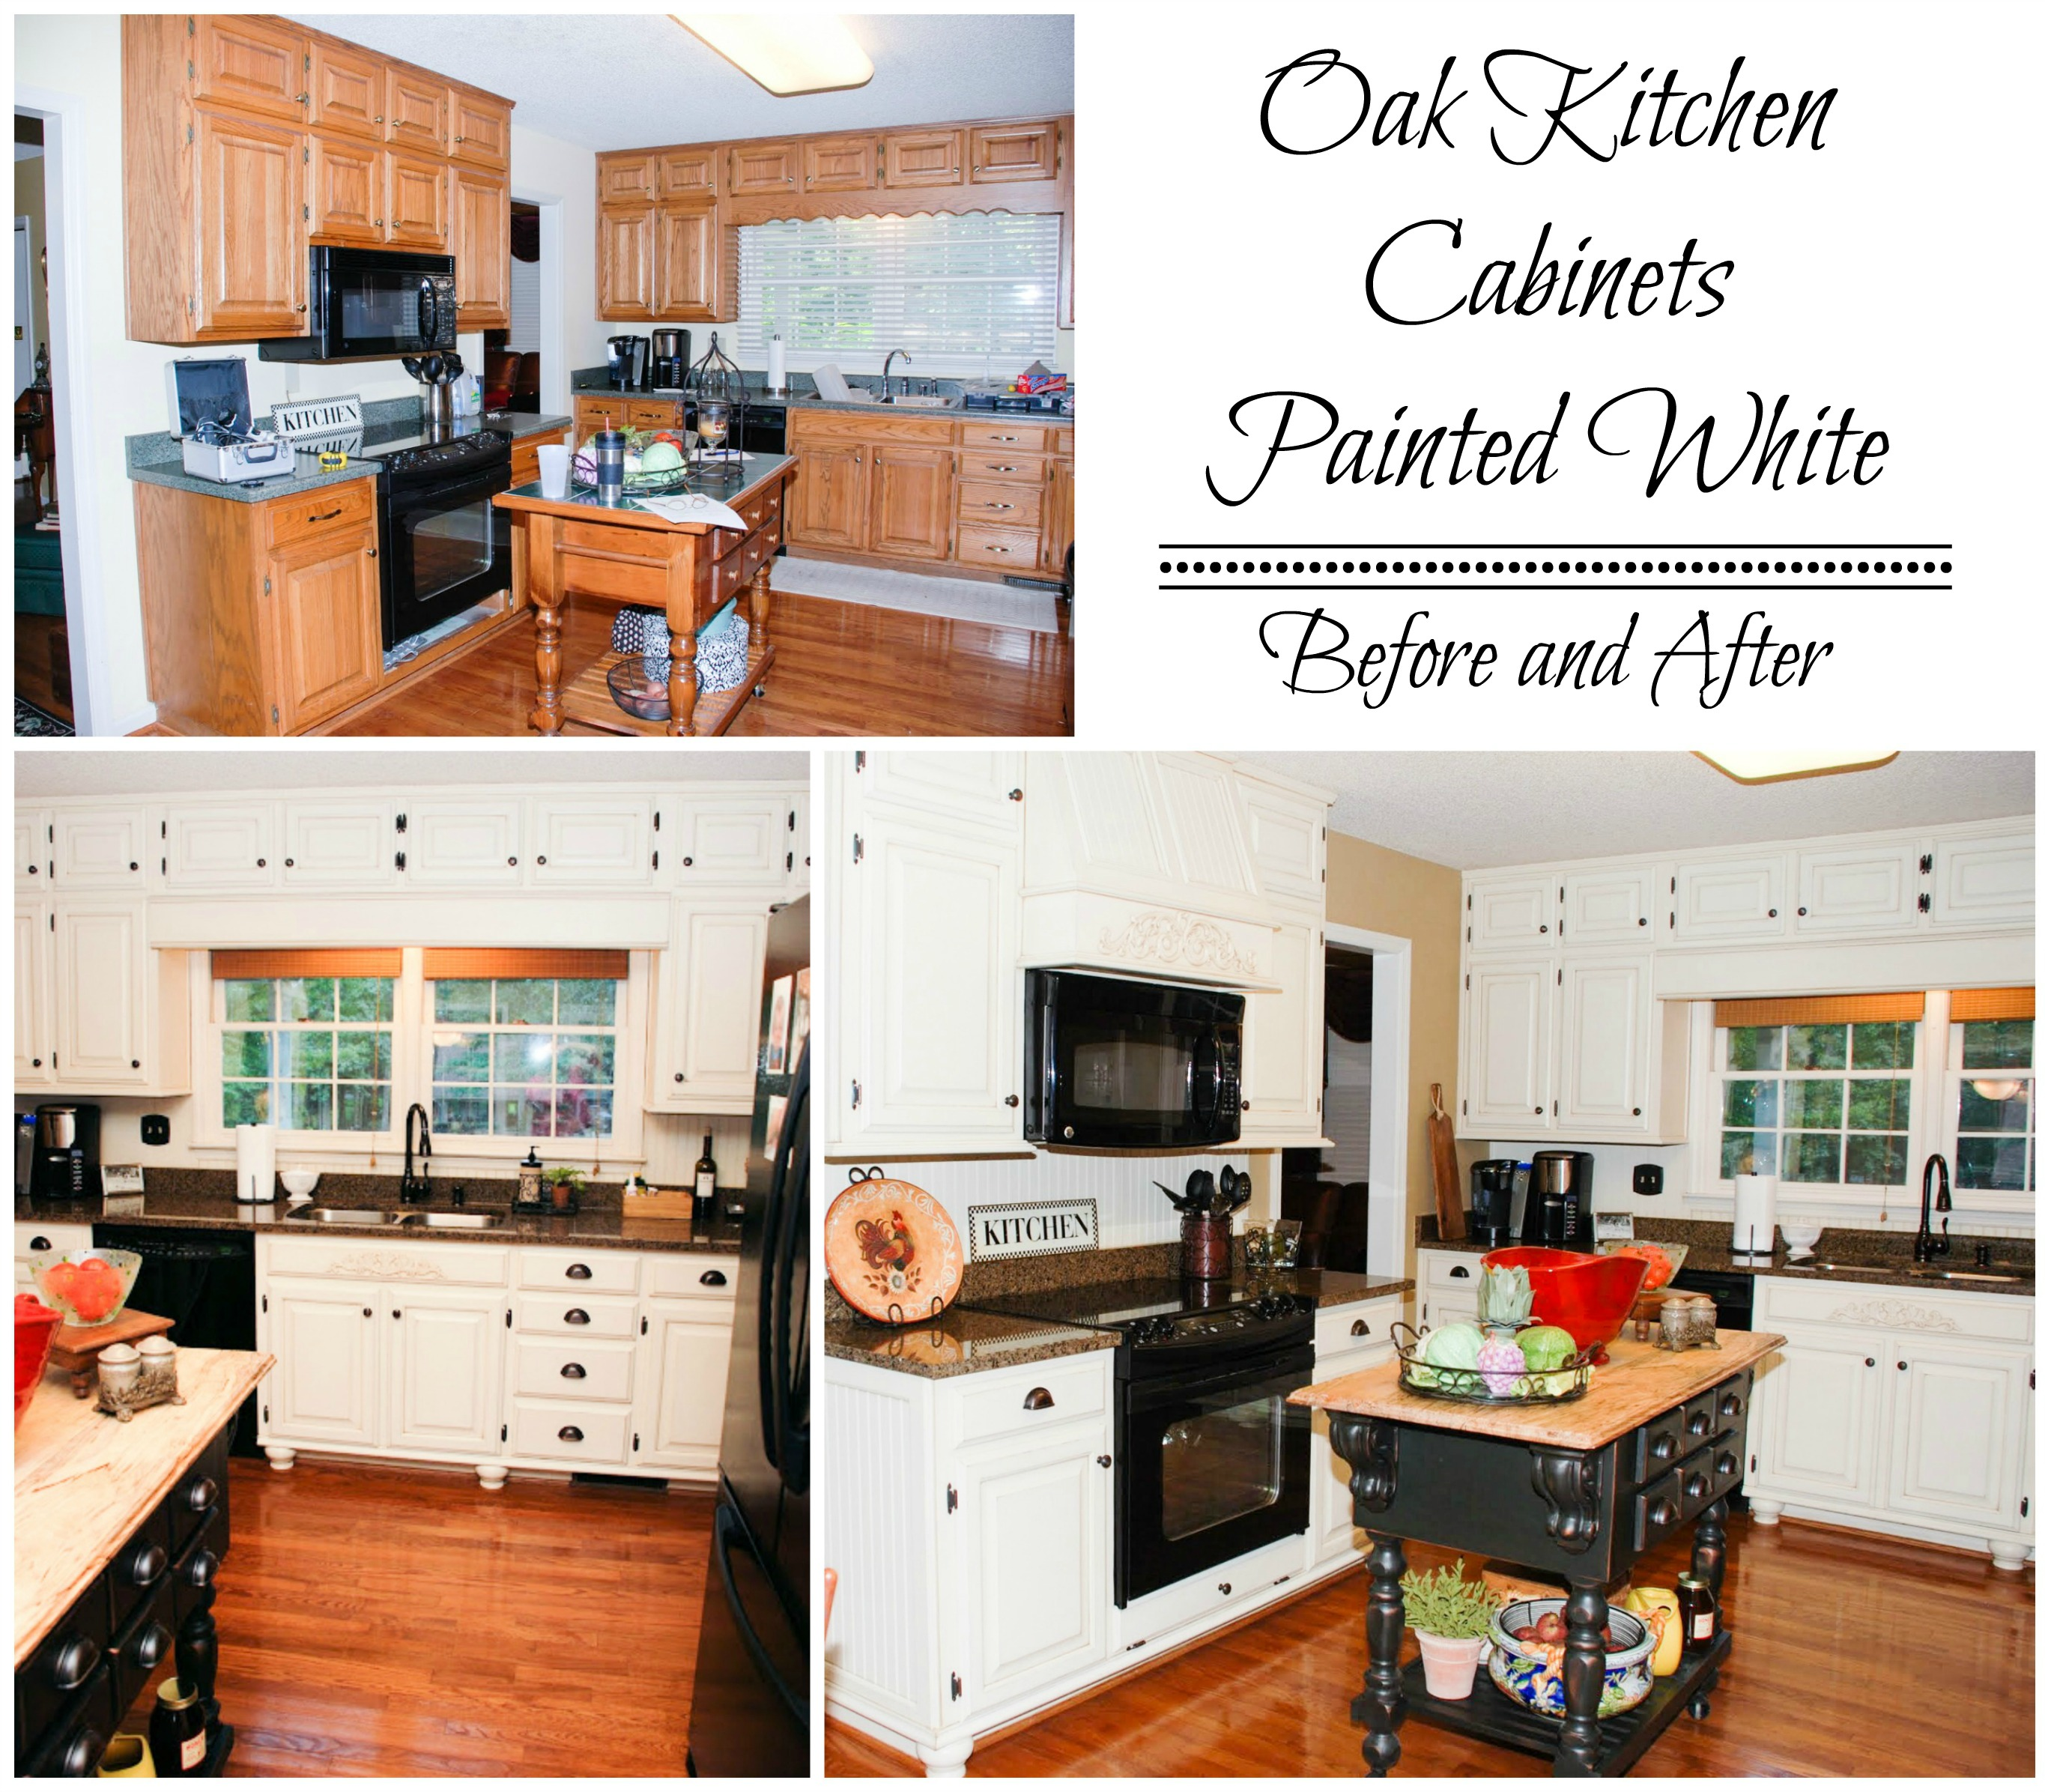 Genial Painted White Oak Cabinets Before And After